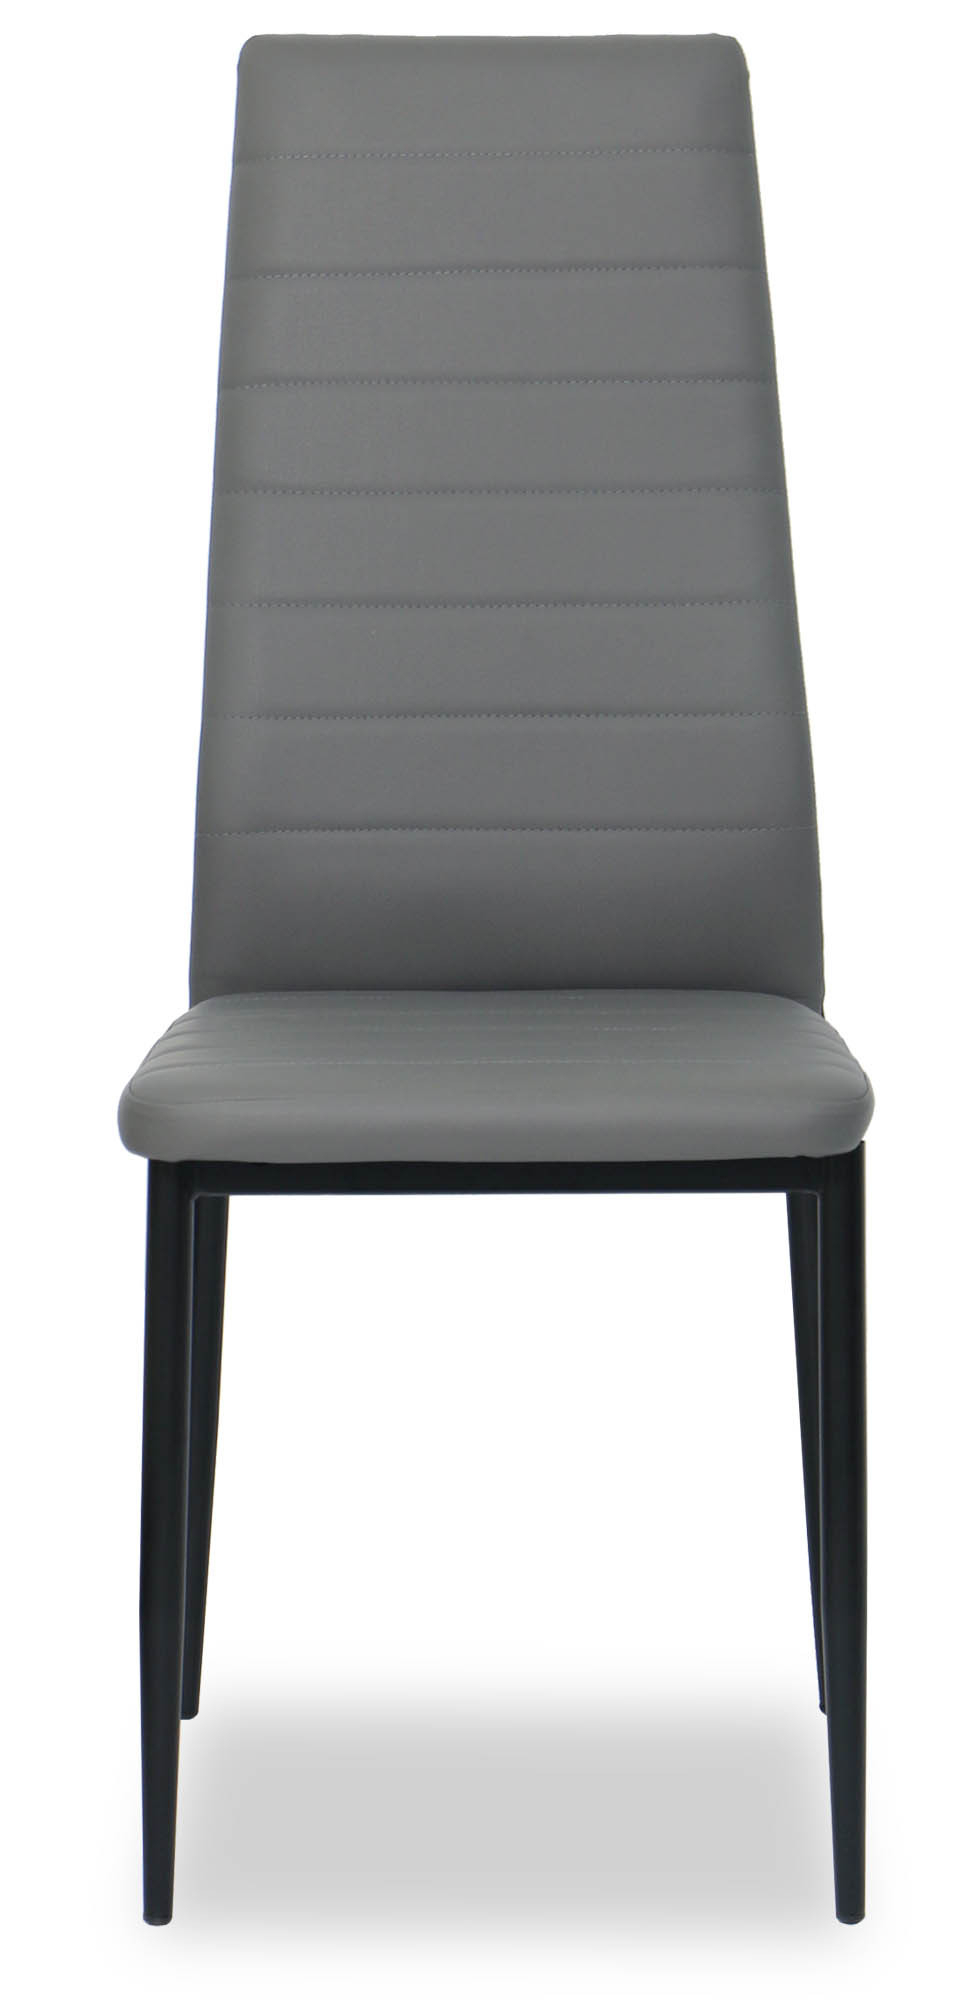 Quinn Dining Chair Grey | Furniture & Home Décor | Fortytwo intended for Quinn Teak Sofa Chairs